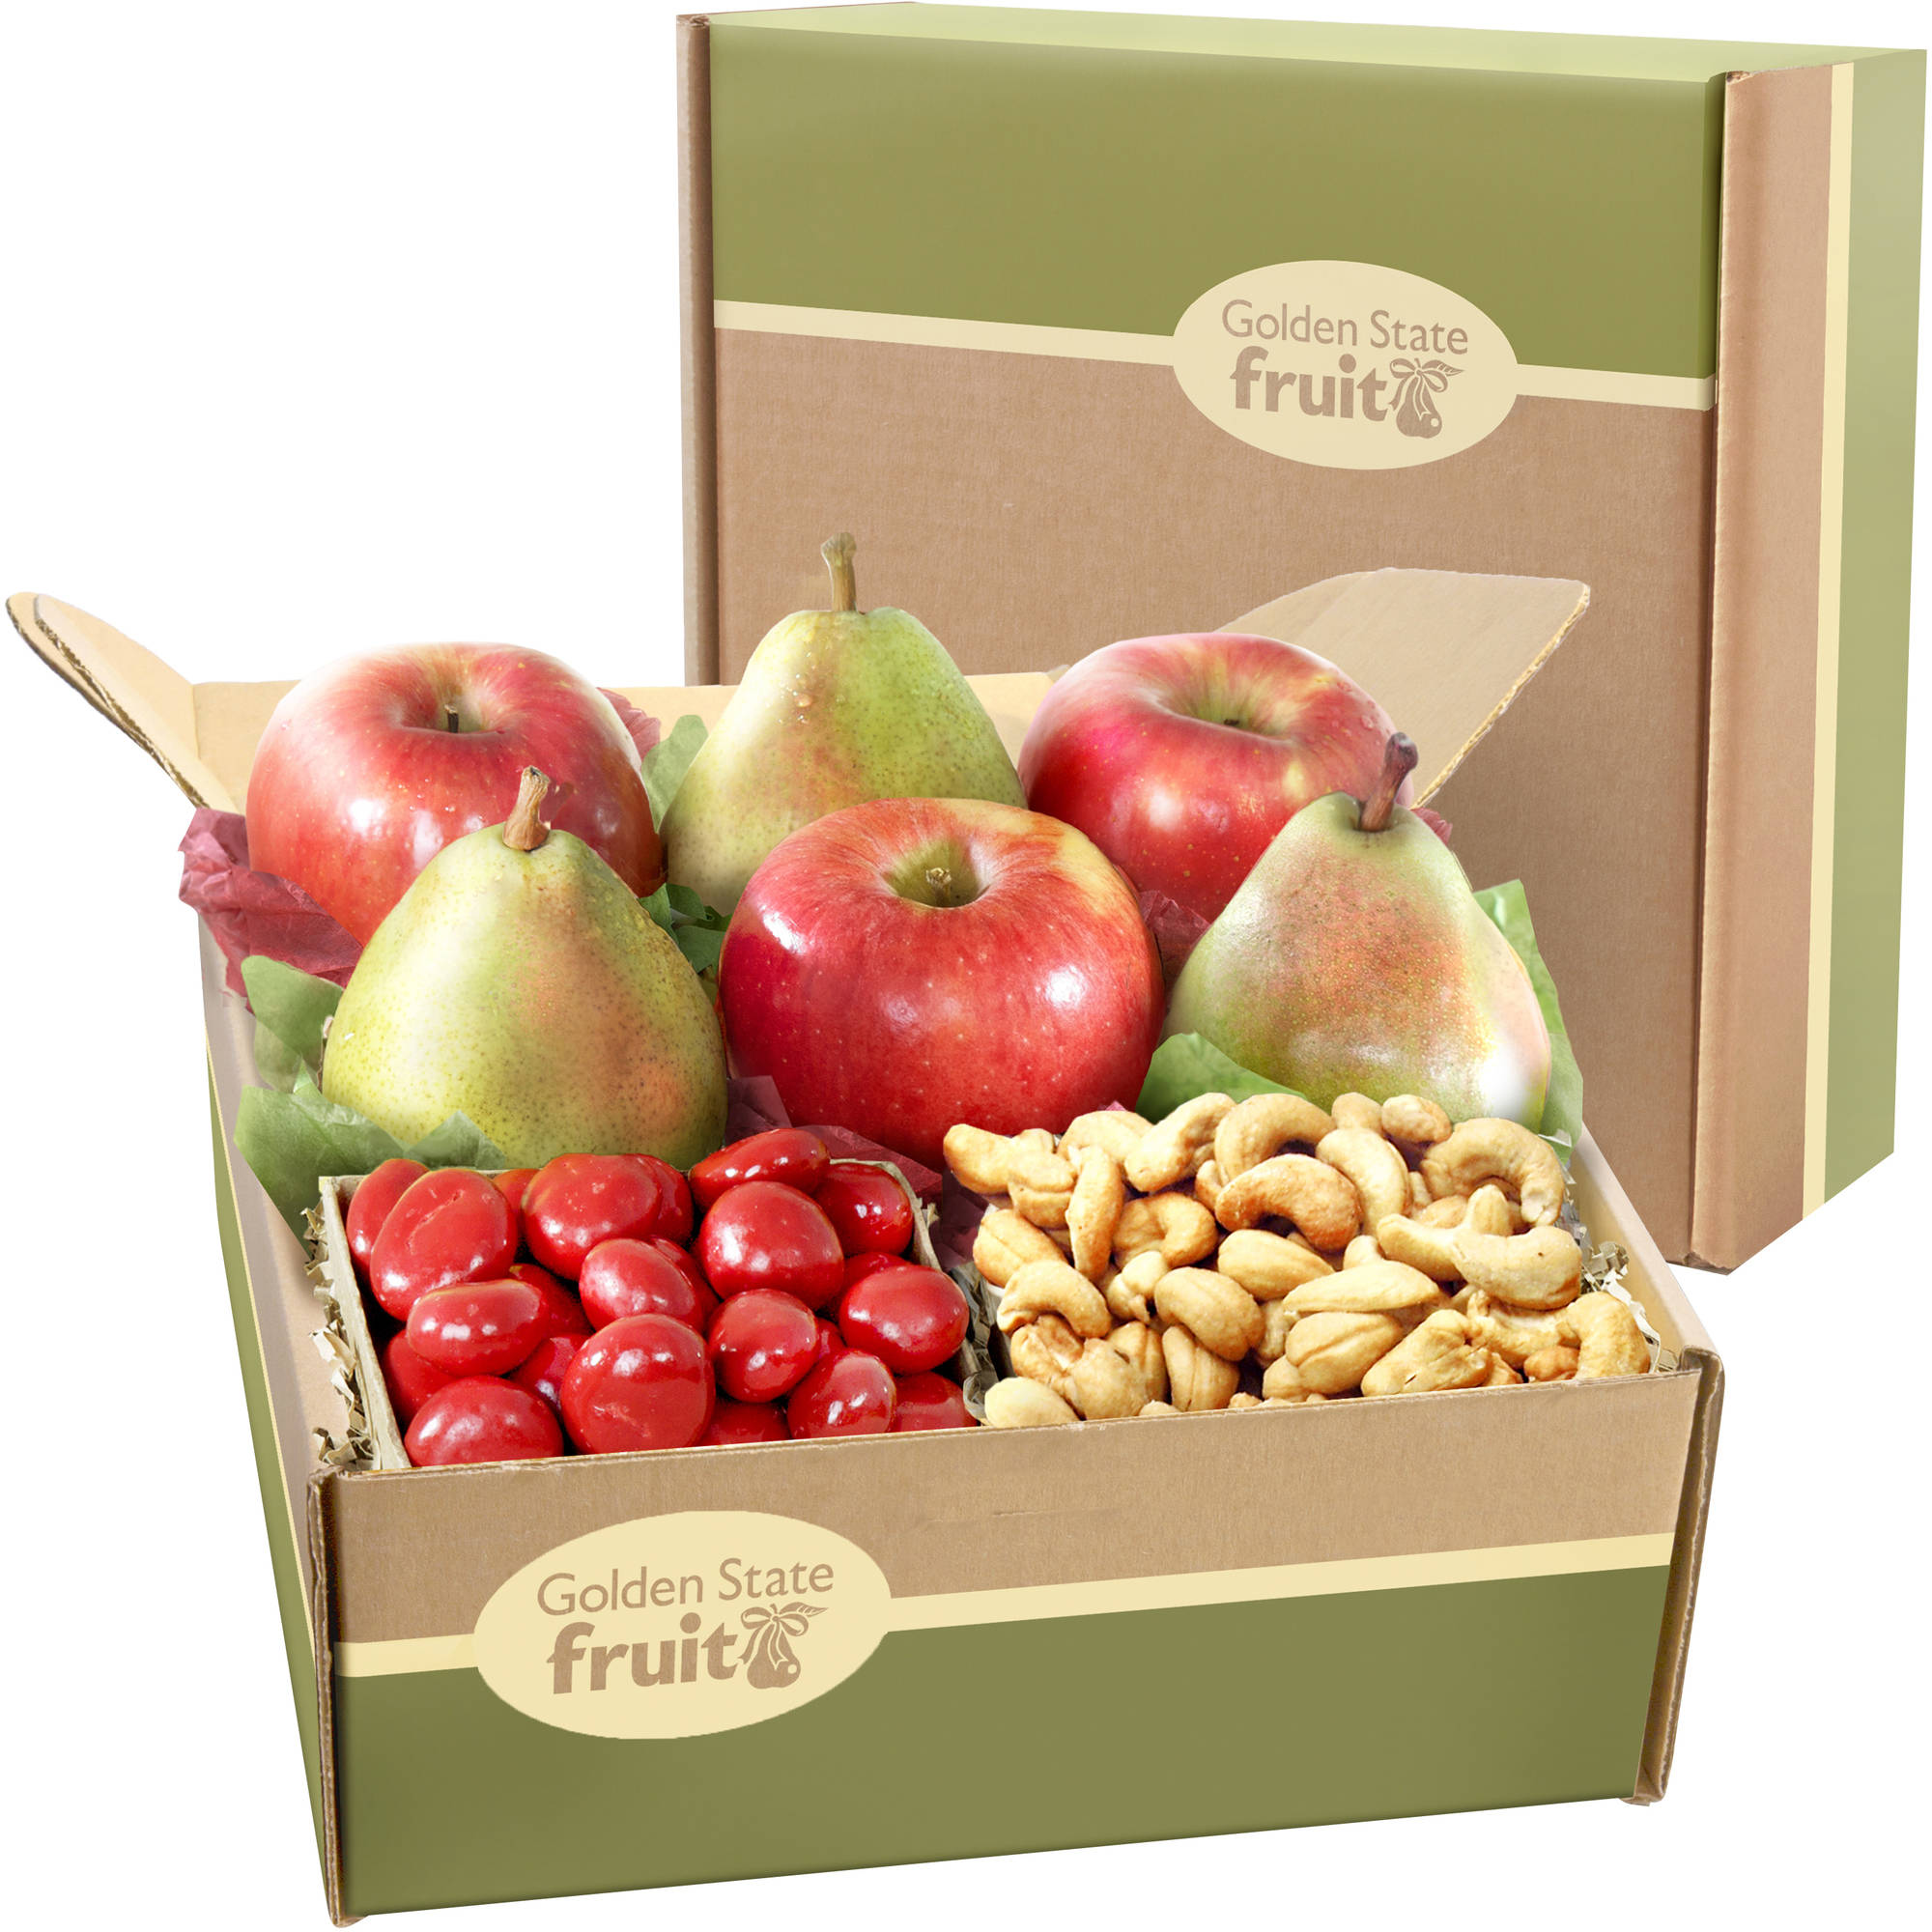 Best Wishes Classic Fruit Gift Box, 8 pc